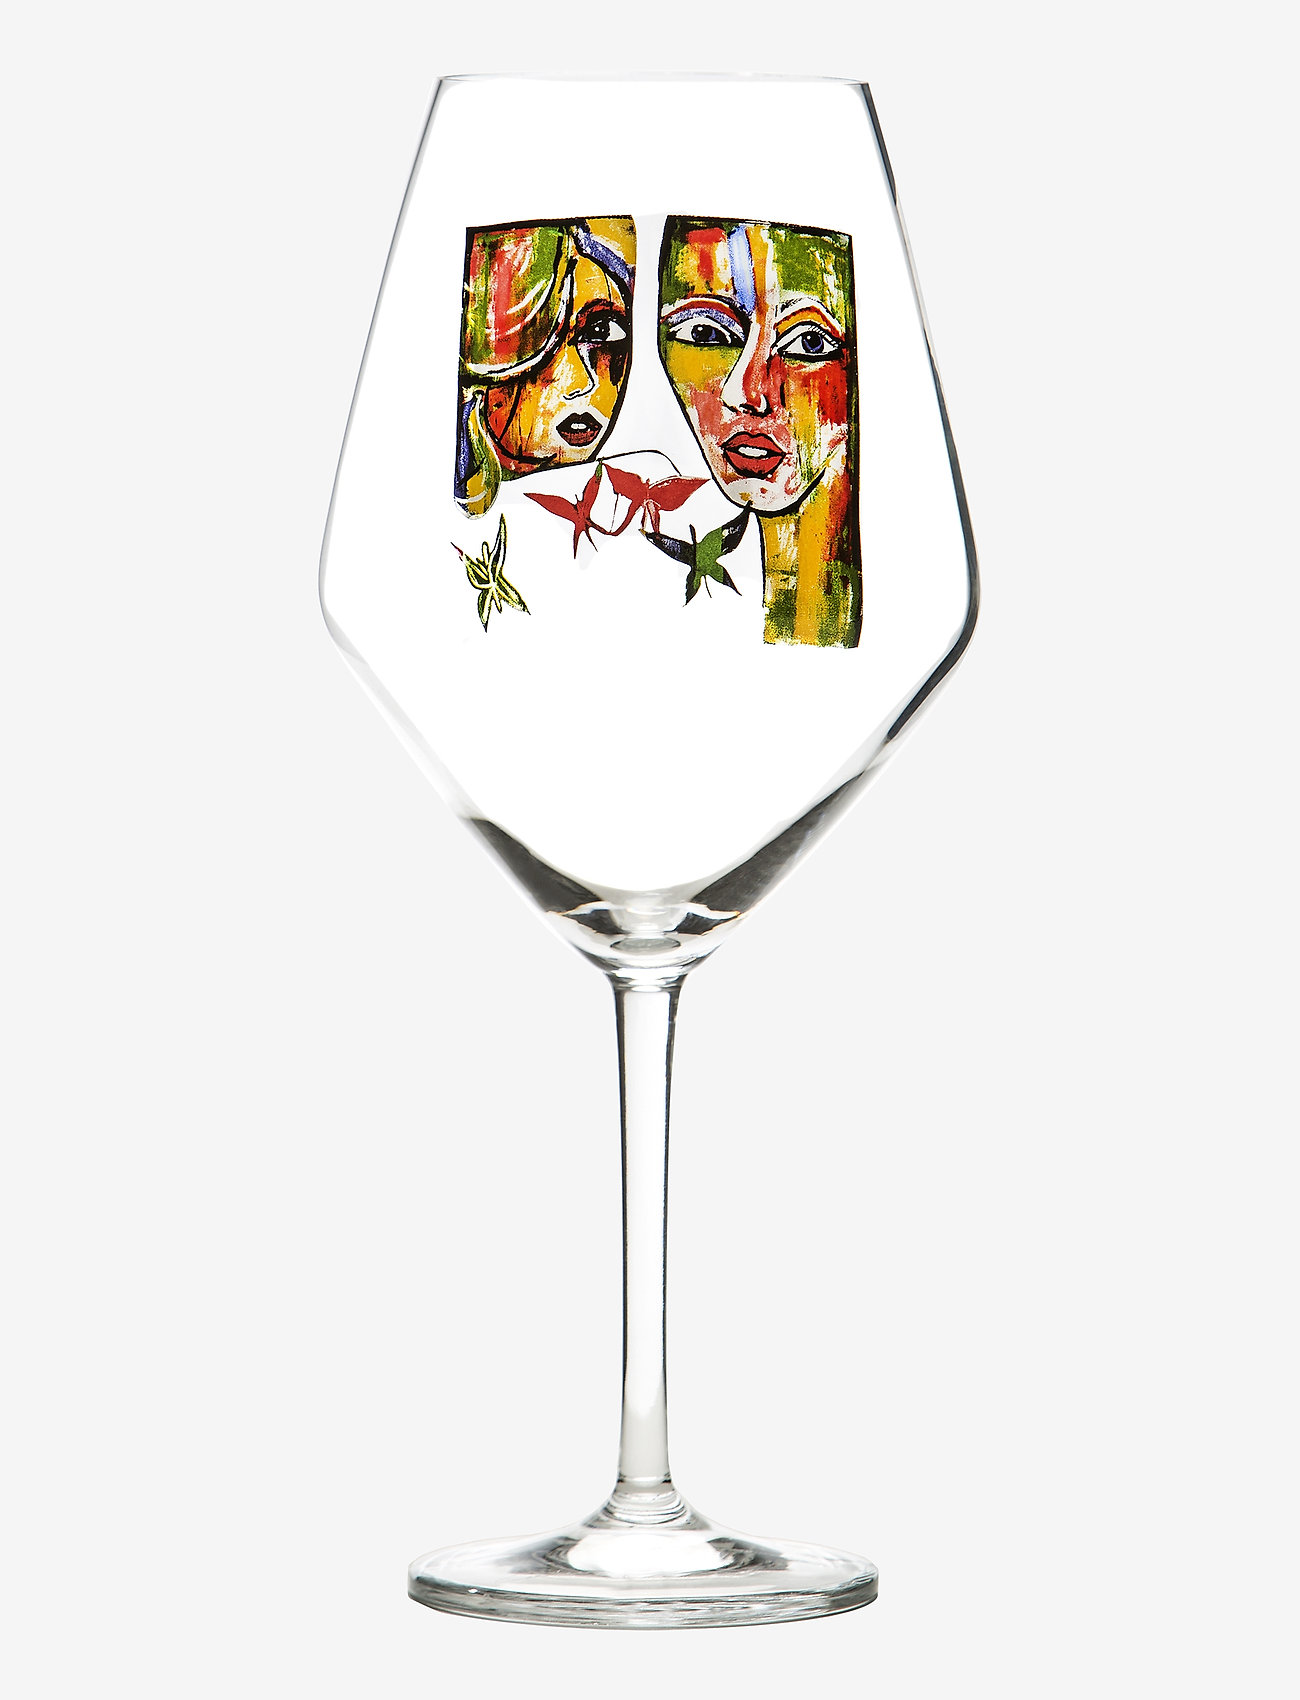 Carolina Gynning - In Love - vinglass - clear with decal - 0